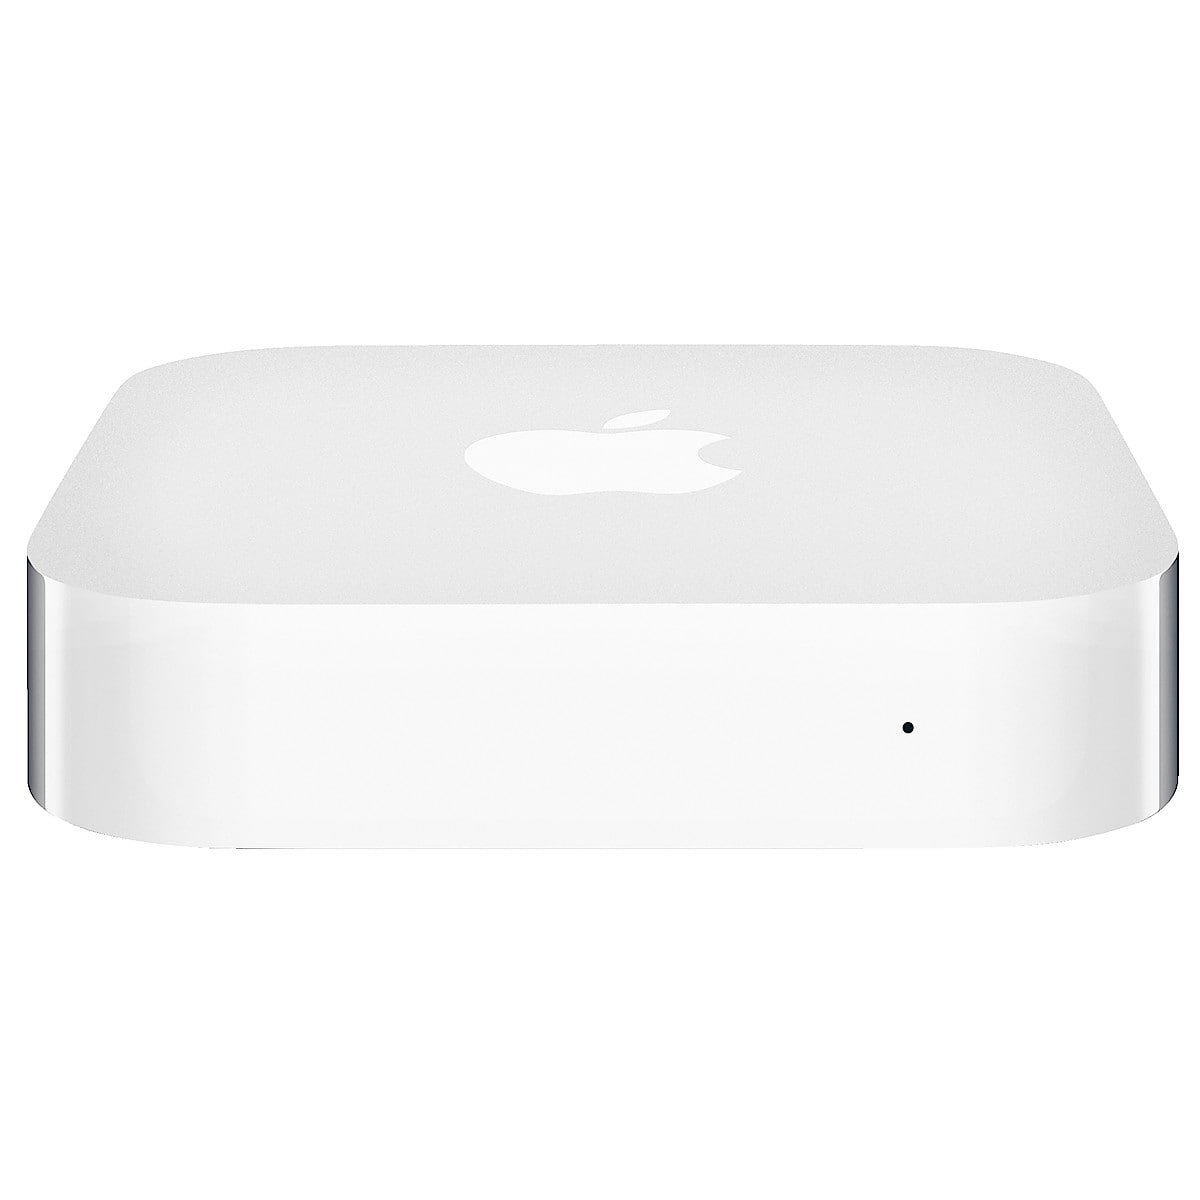 WLAN-Router mit Audioausgang, Apple AirPort Express